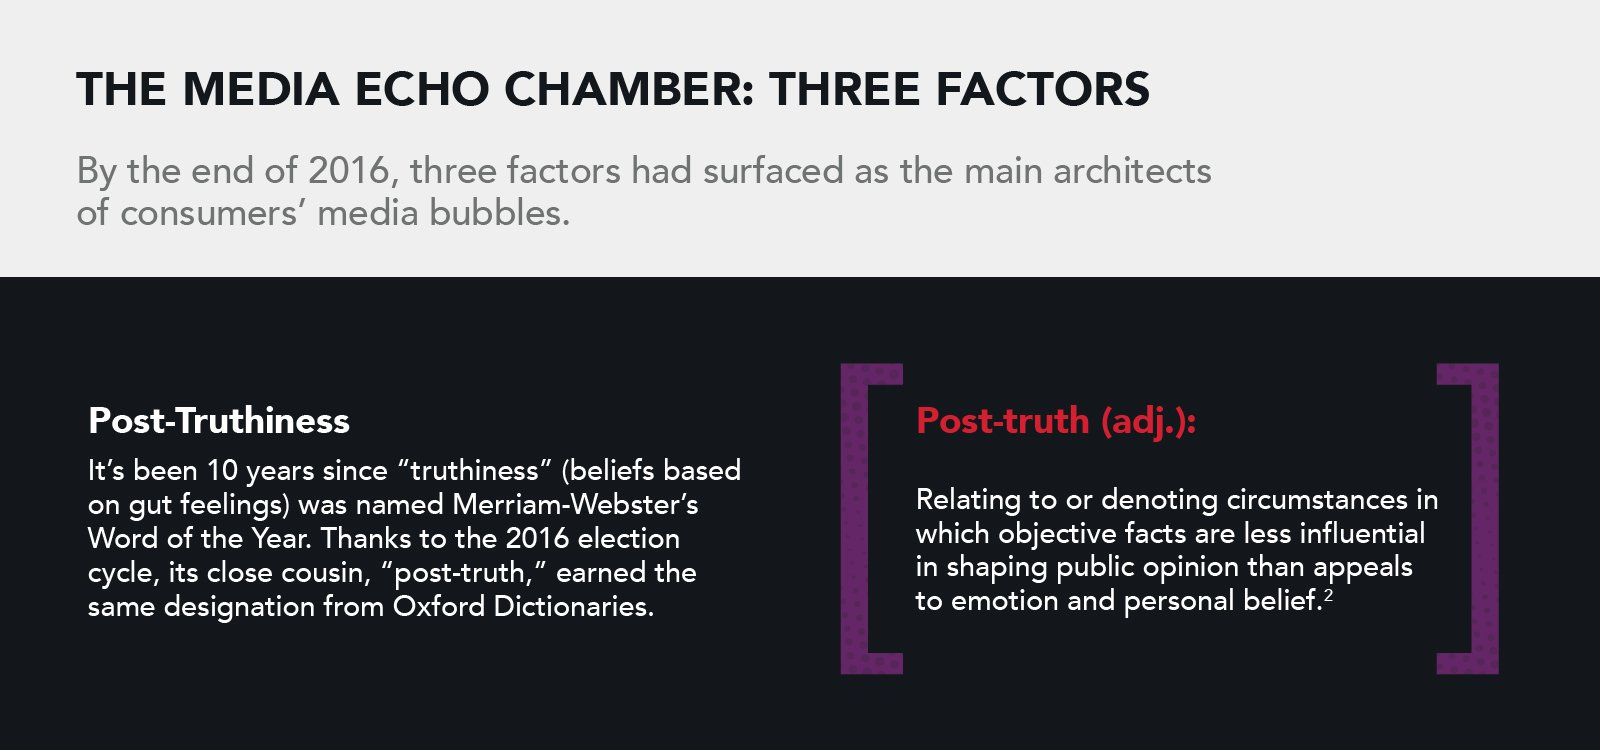 Publicis Experiences Digital Brands and Live Experiences - Media echo chamber's post-truthiness